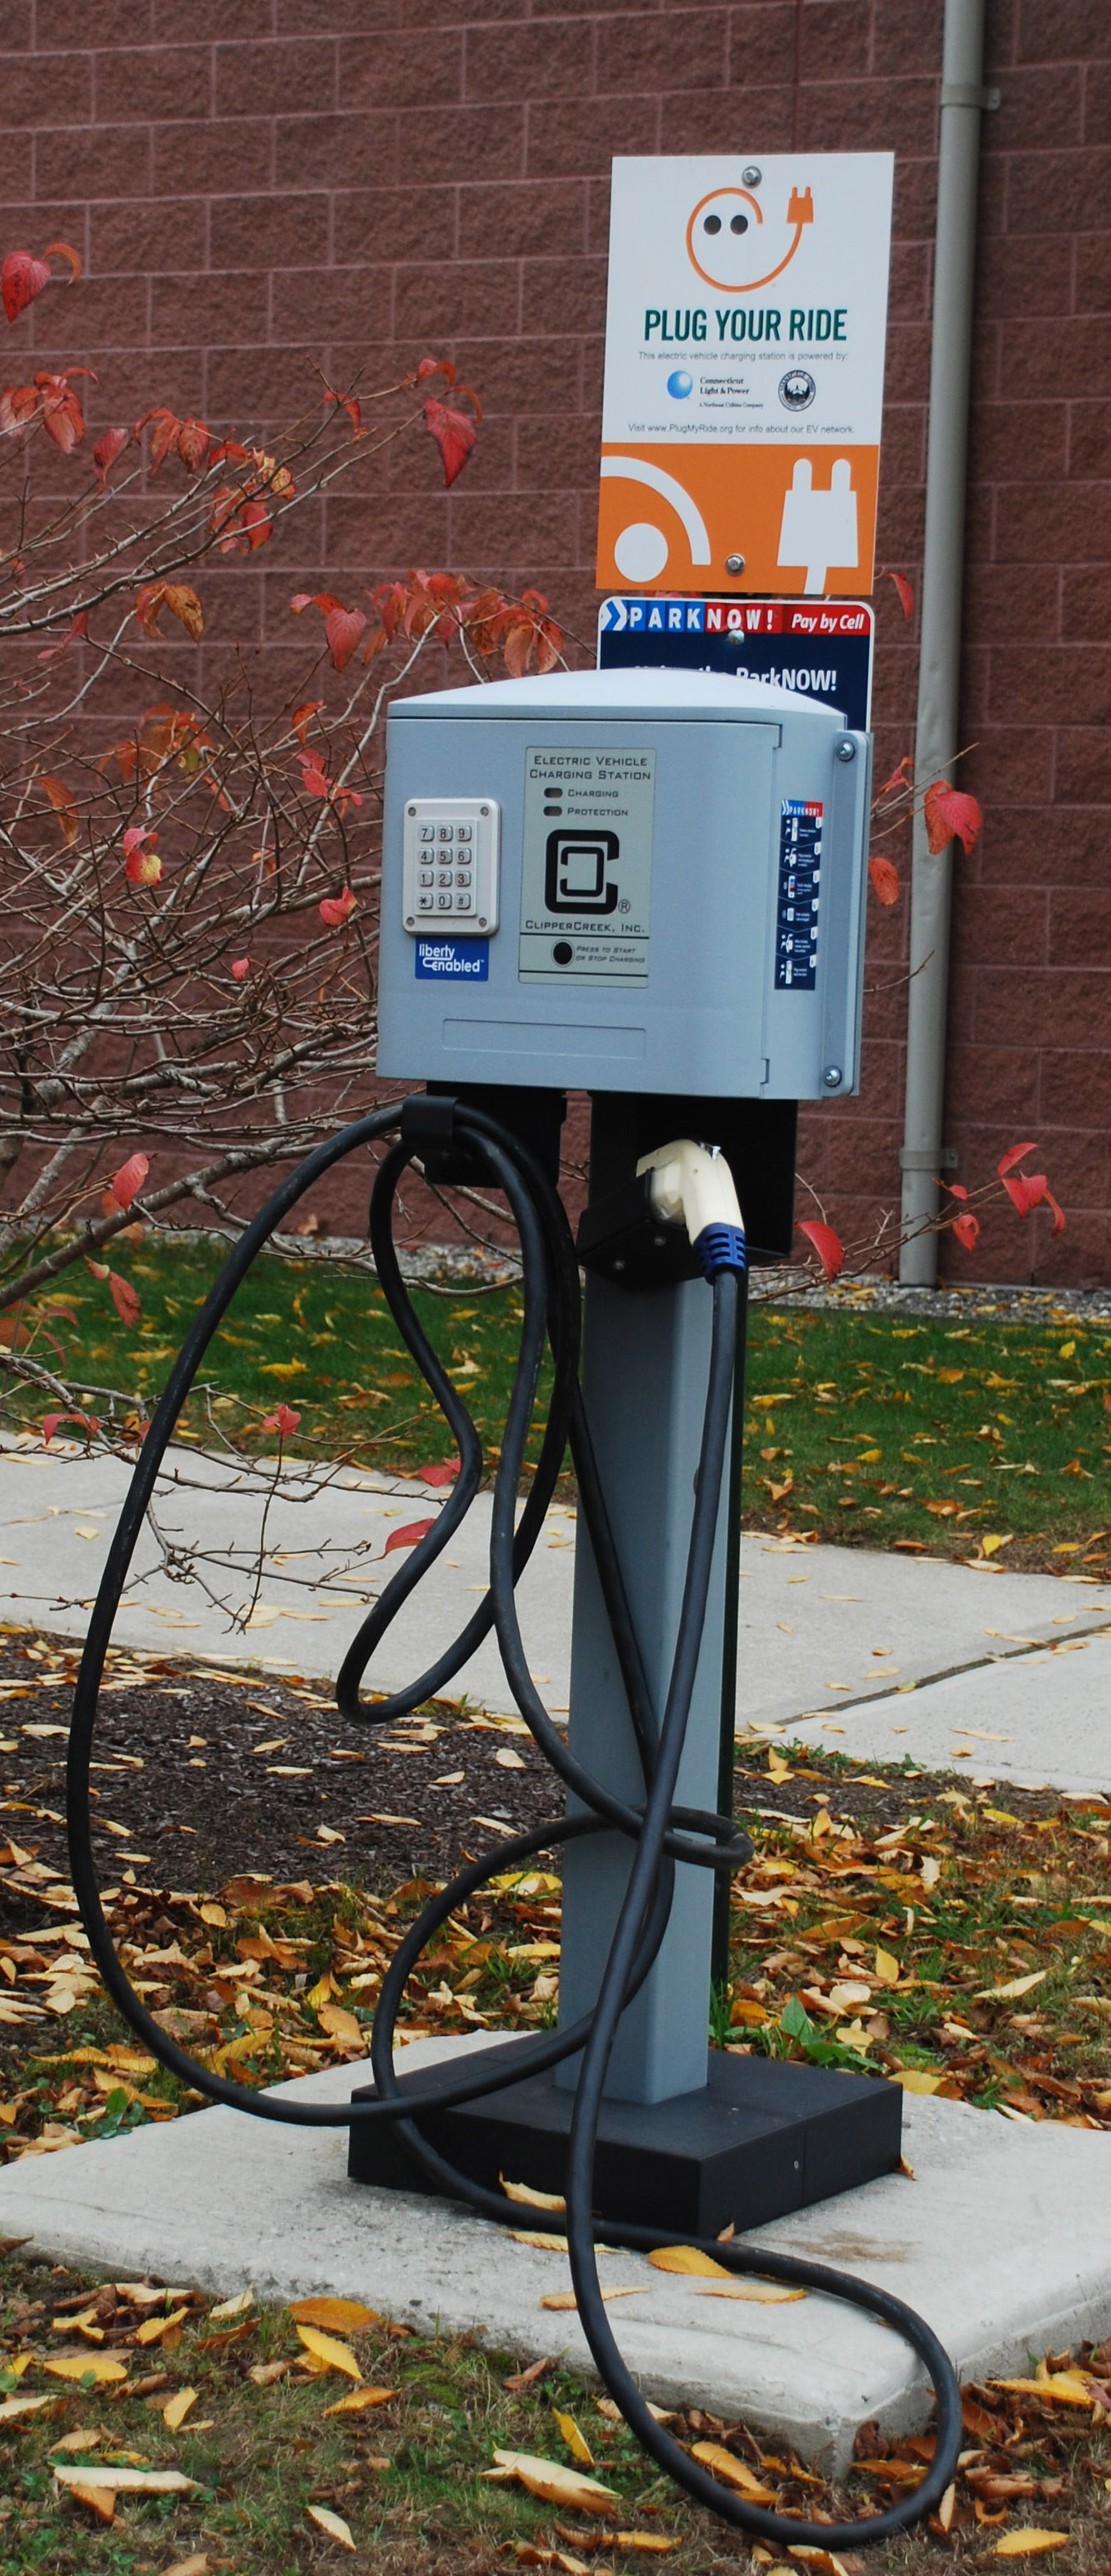 A charging station at the Mansfield Community Center. The town manager drives an electric car.